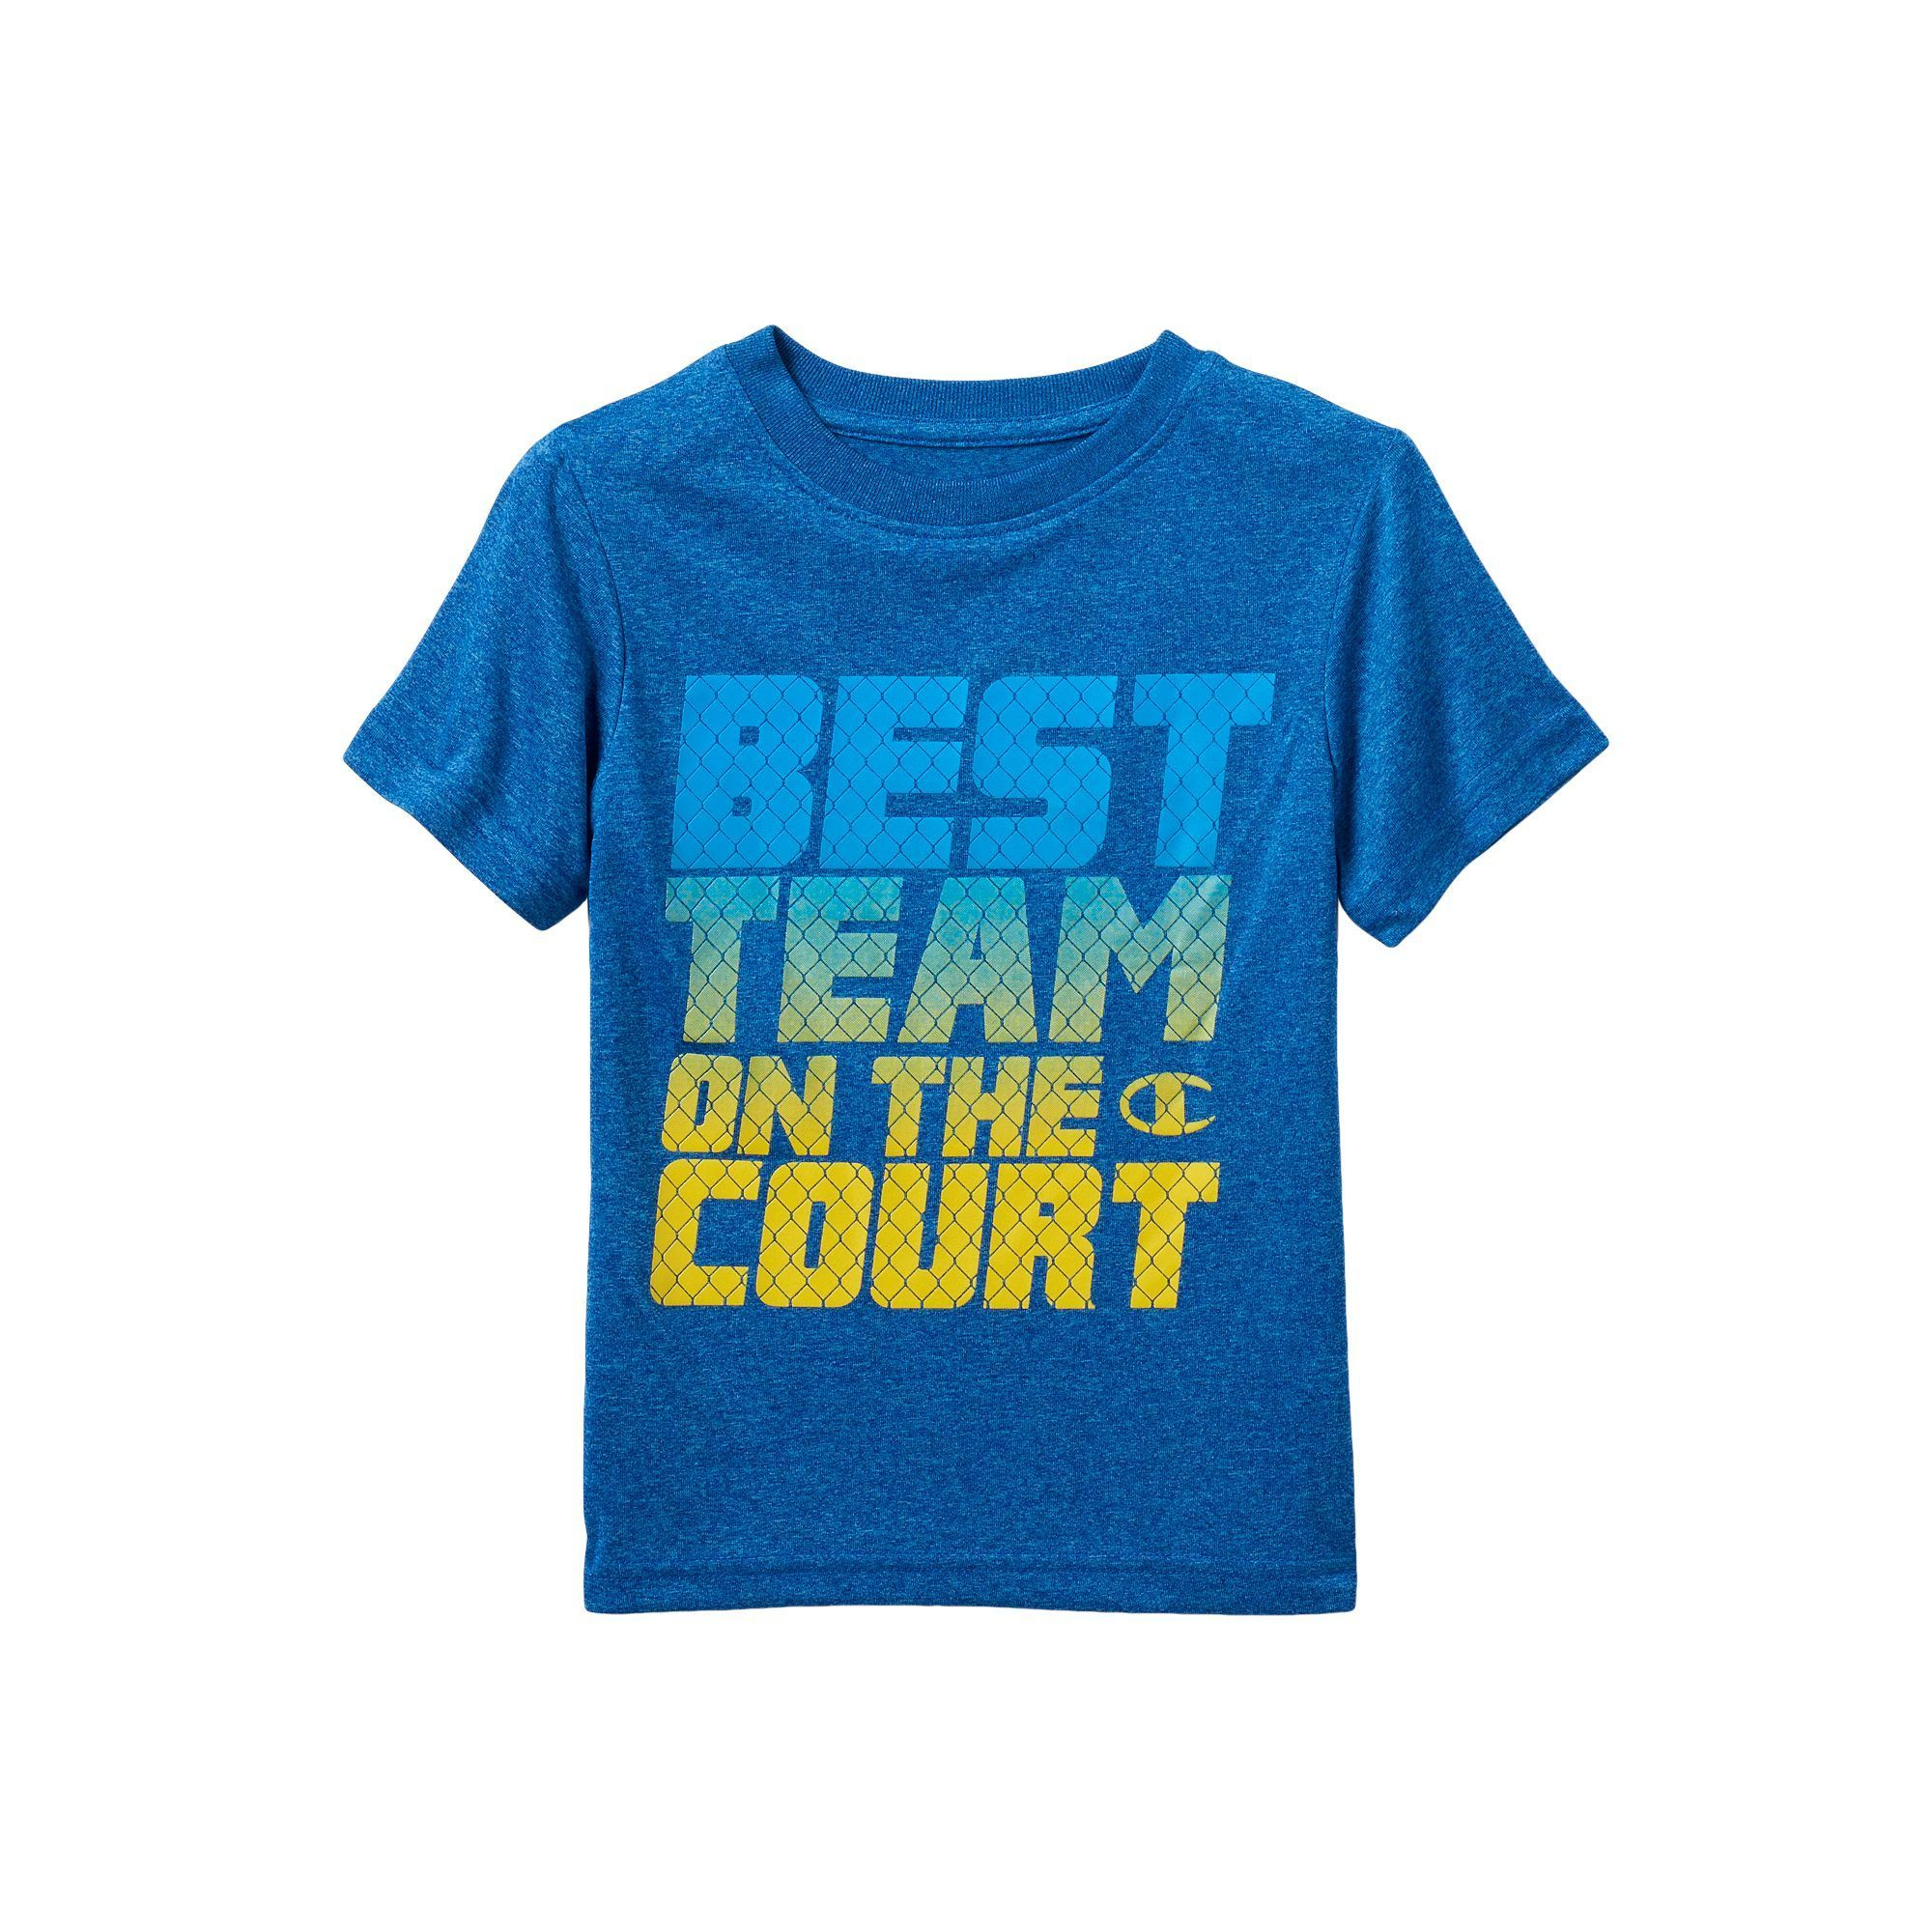 "Boys 4-7 Champion ""Best Team On The Court"" Performance Graphic Tee, Boy's, Size: 4, Blue Other"